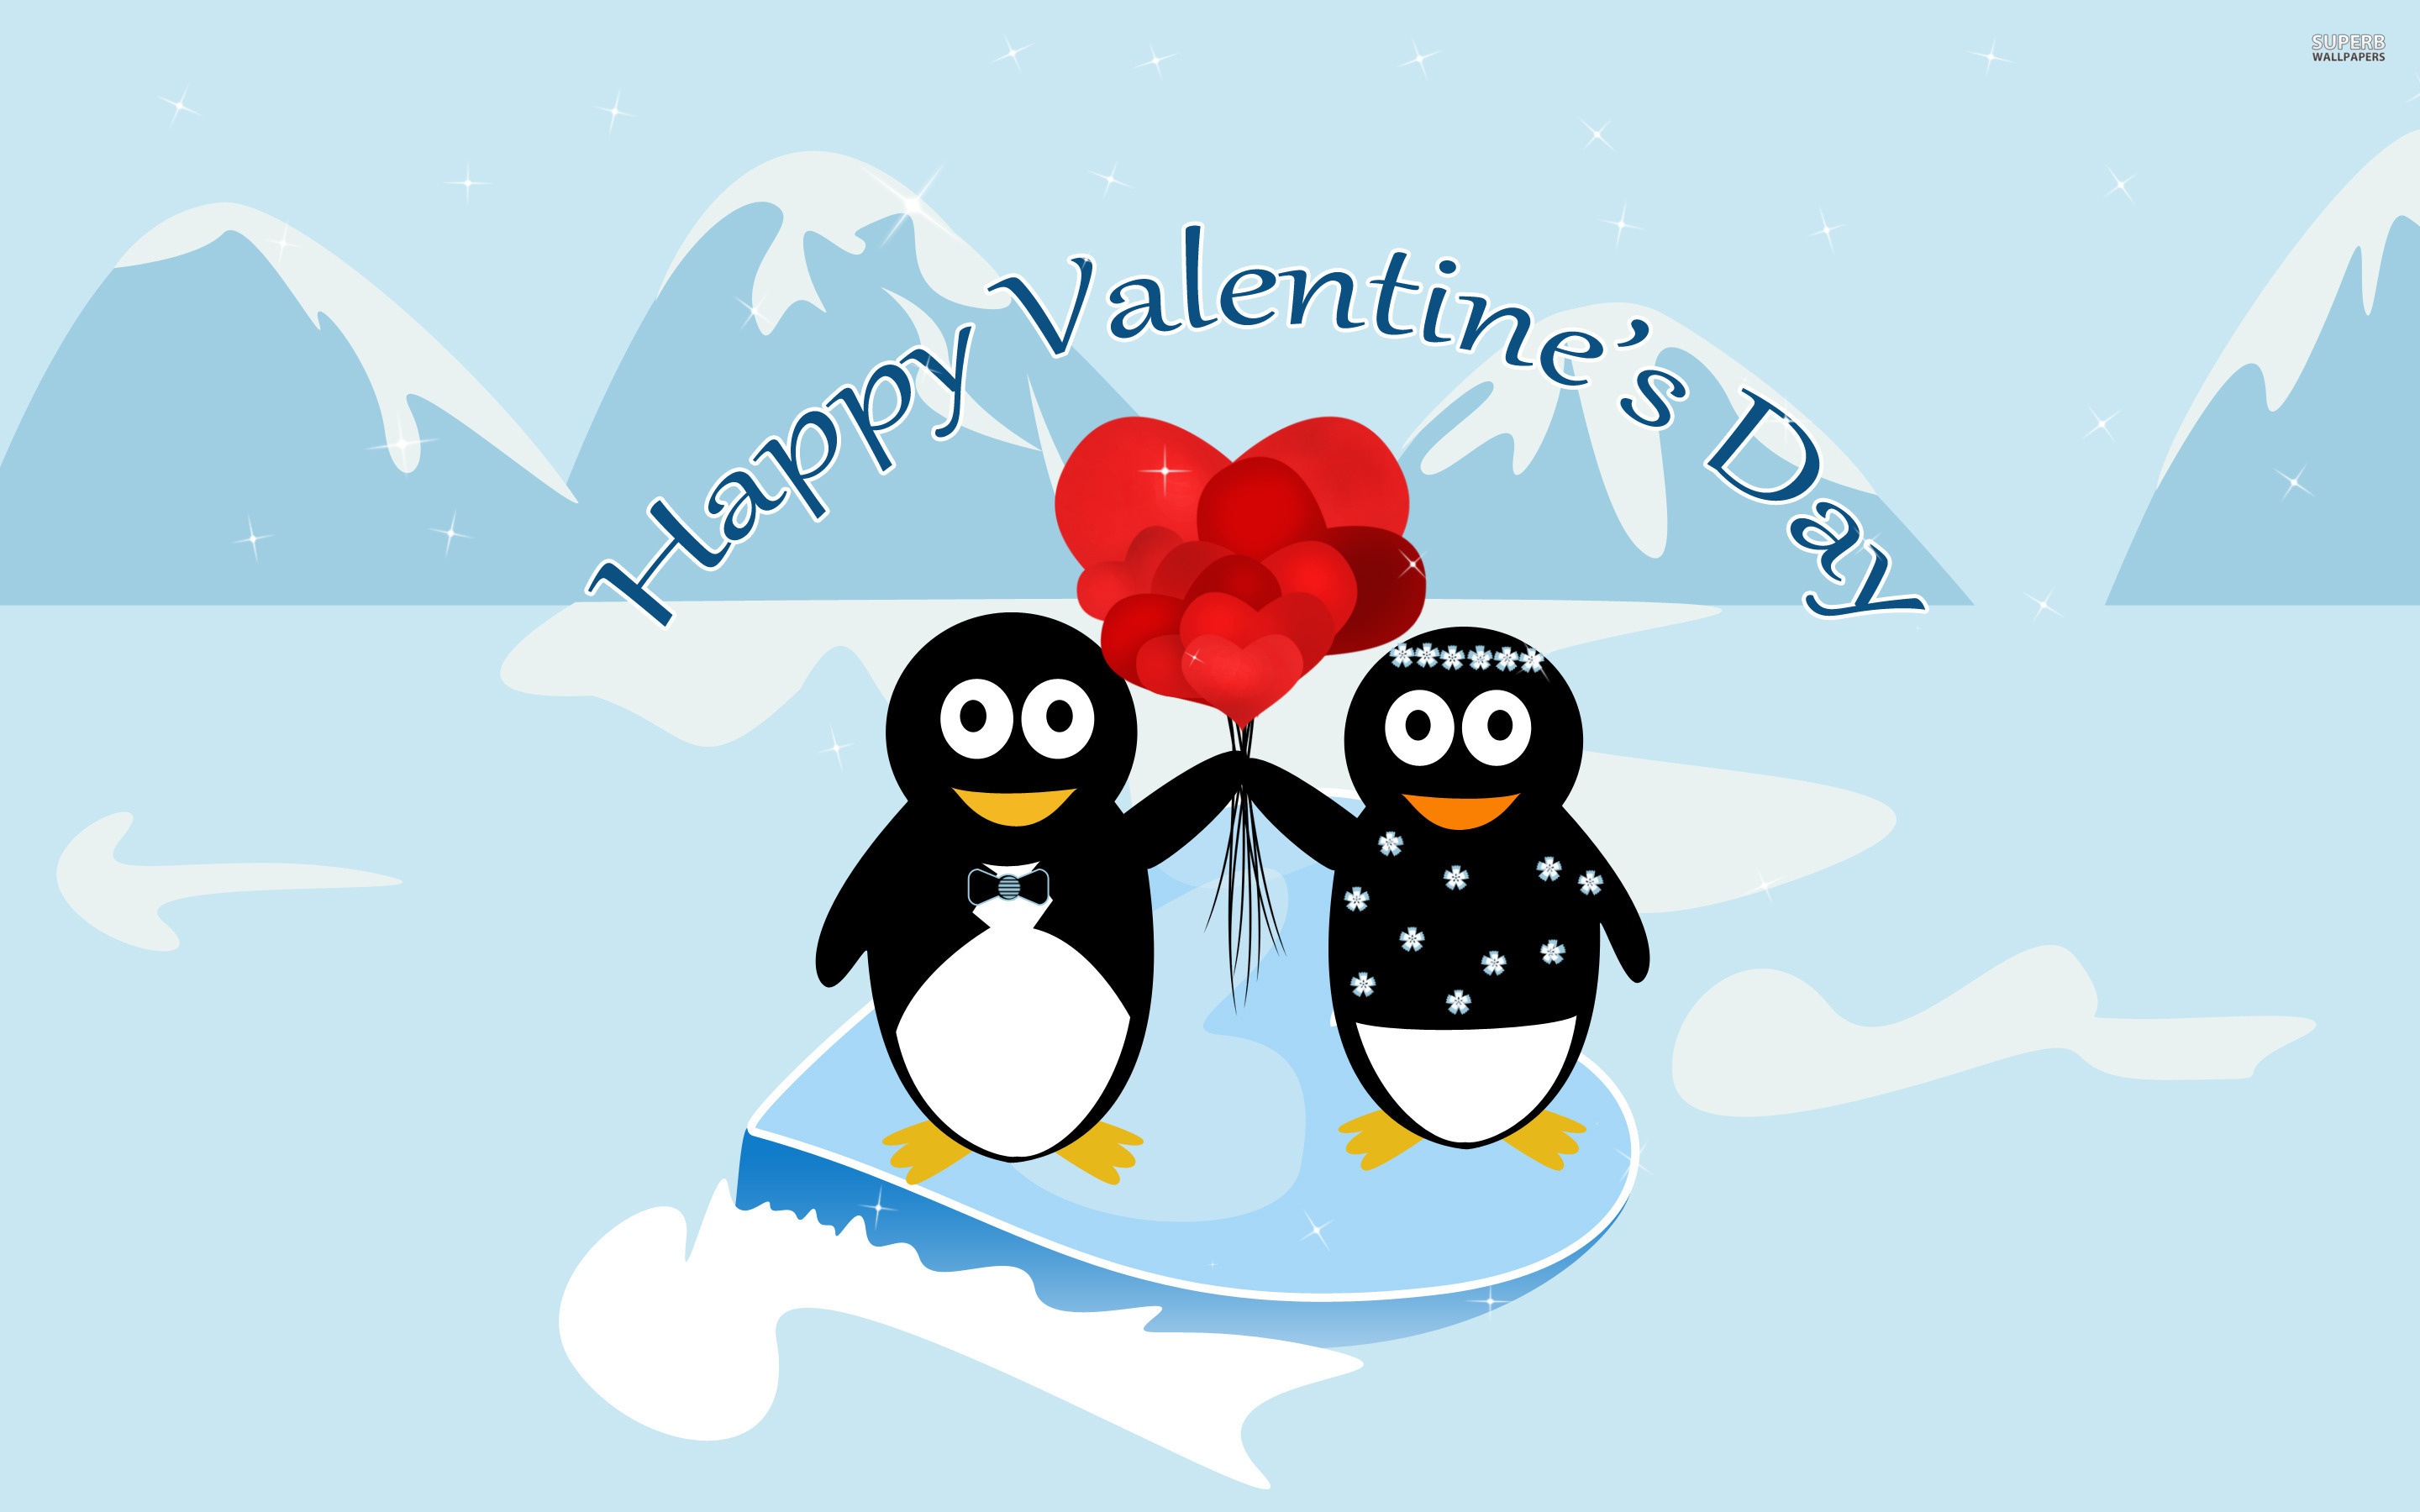 happy-valentines-day-17764-2880x1800